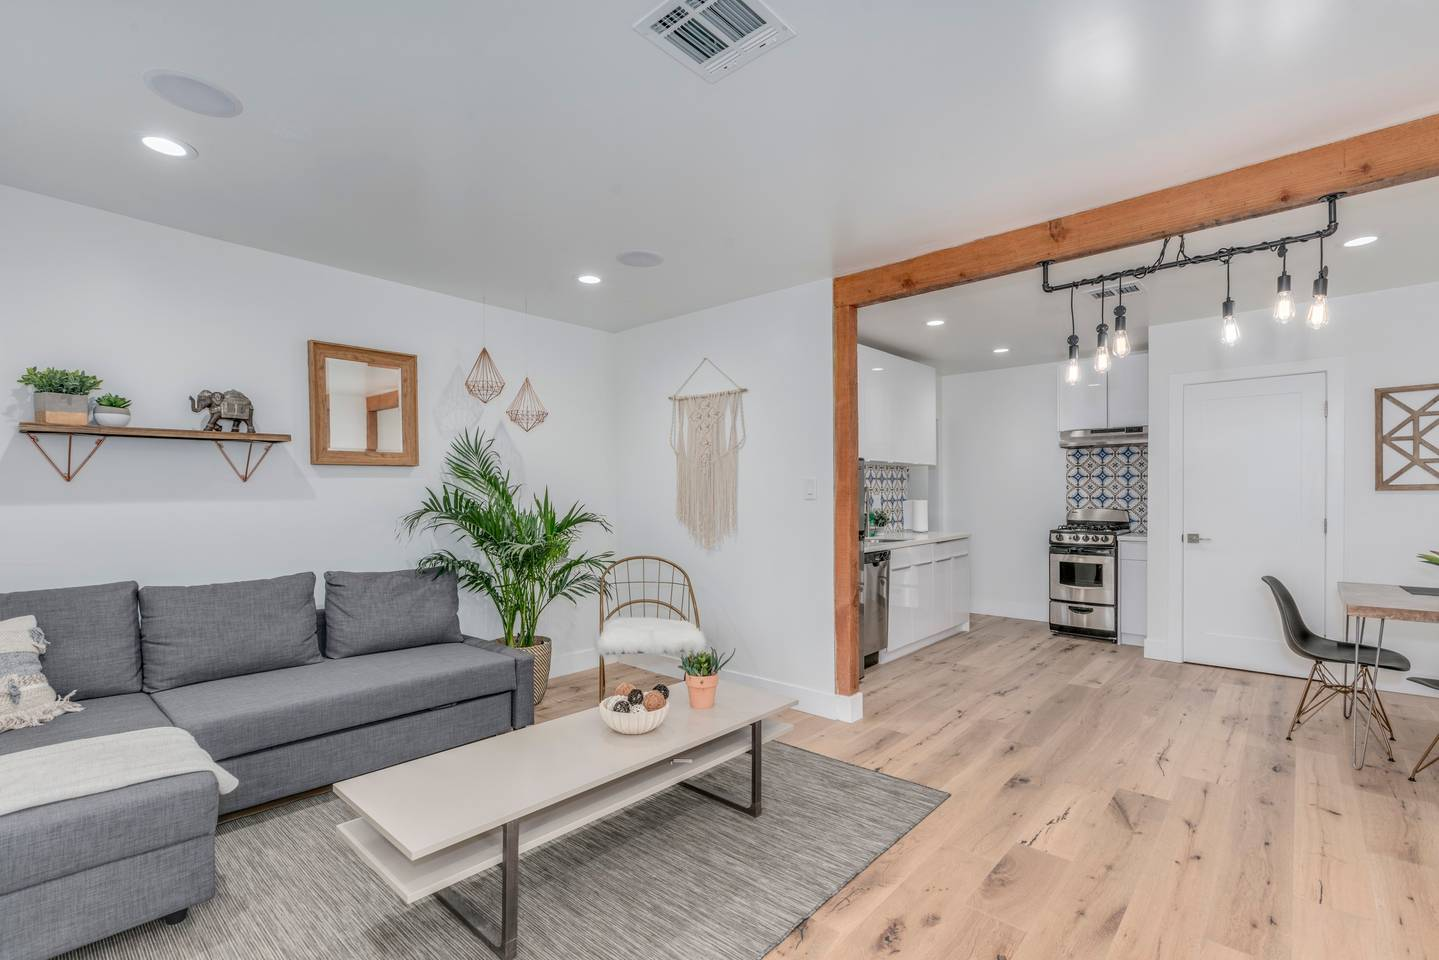 bali inspired airbnb home in silverlake